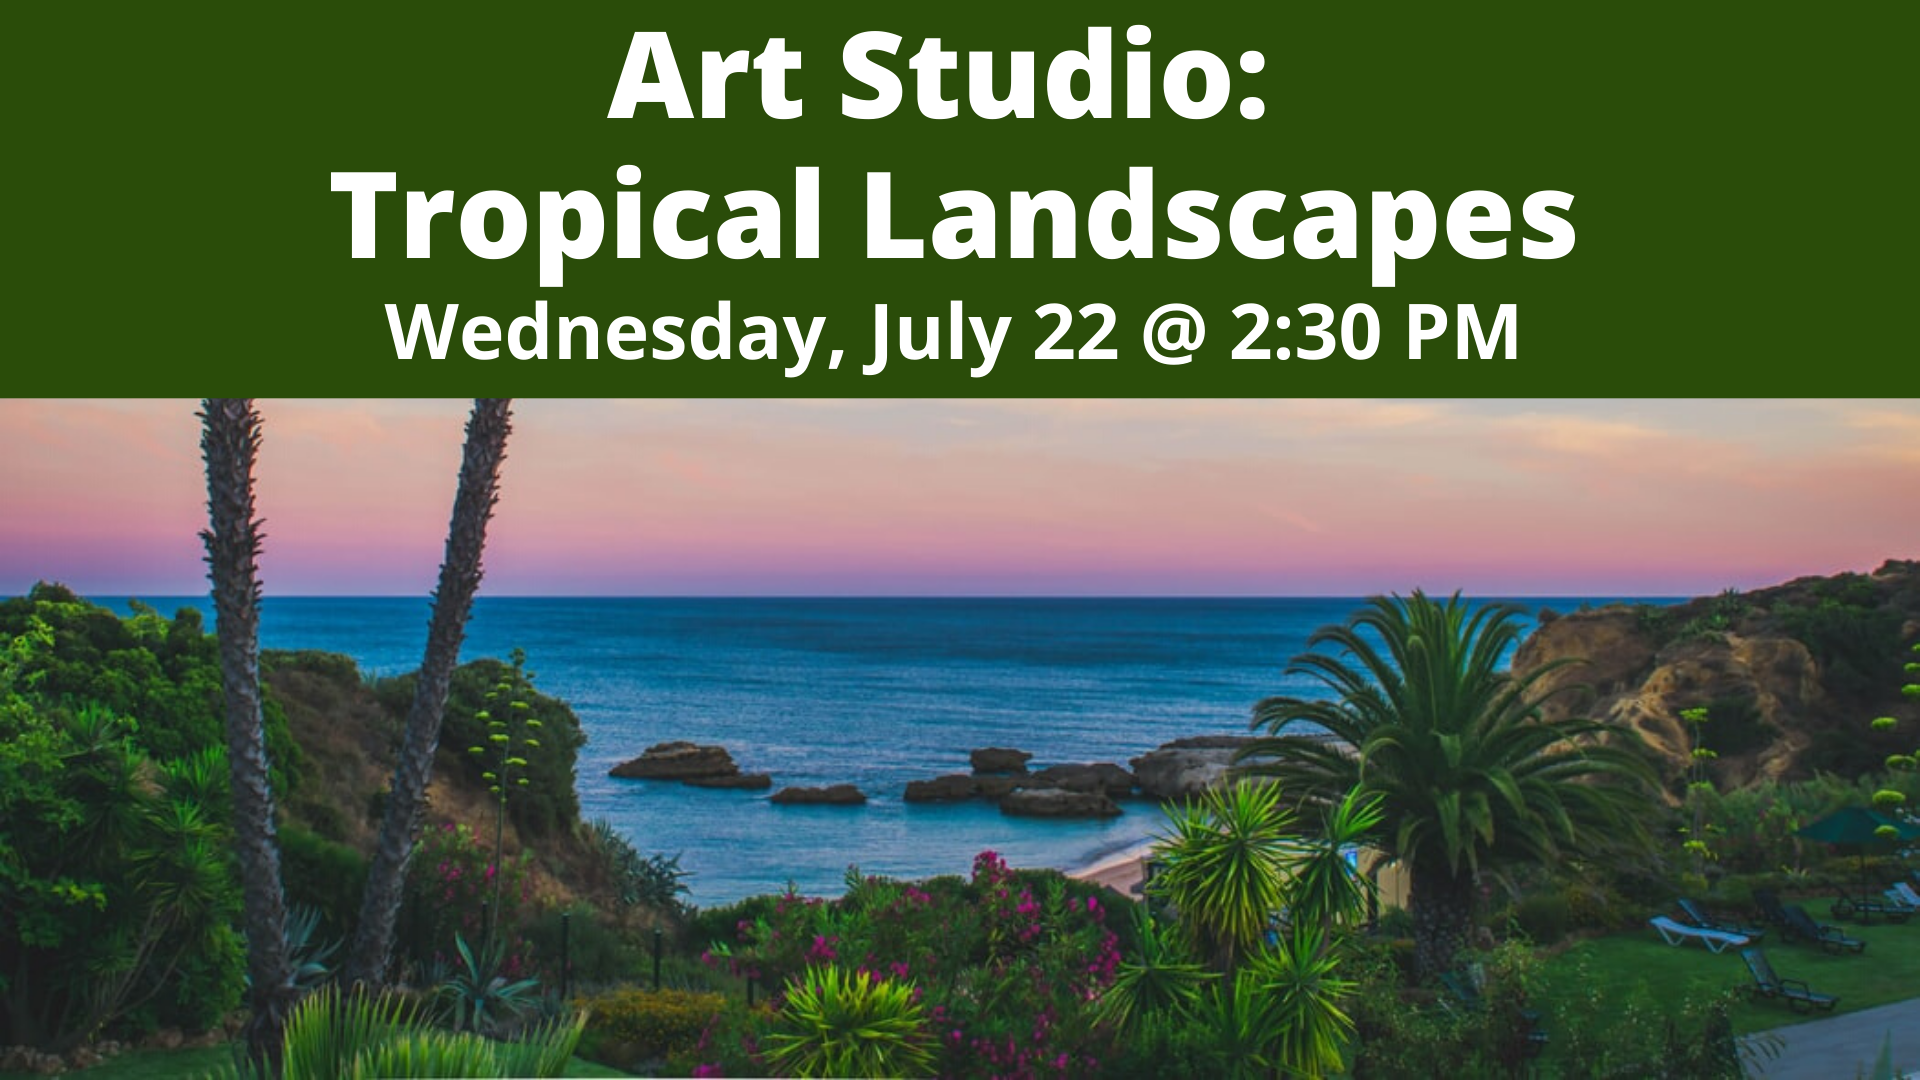 Art Studio: Tropical Landscapes